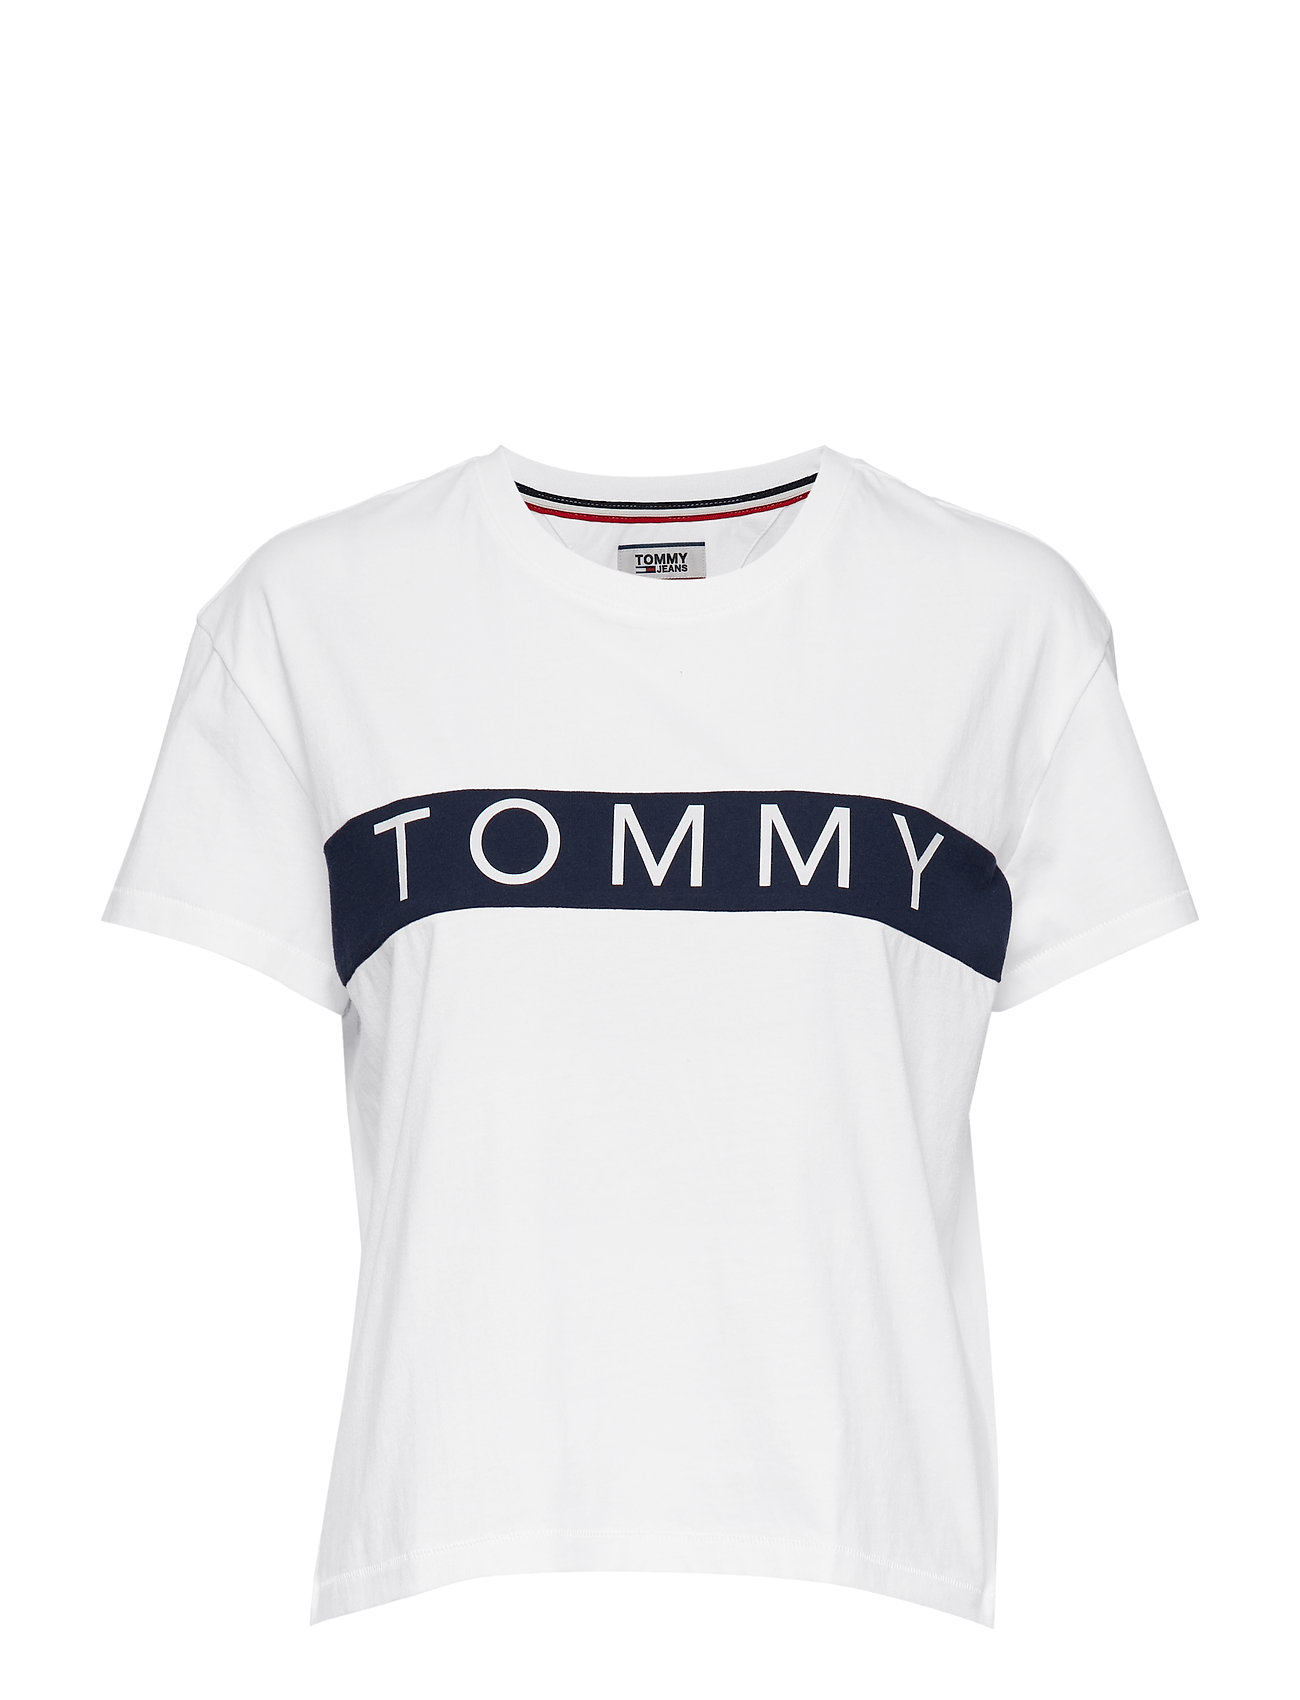 783cdac4abed12 Tjw Tommy Bold Logo Tee (Bright White) (29.19 €) - Tommy Jeans ...